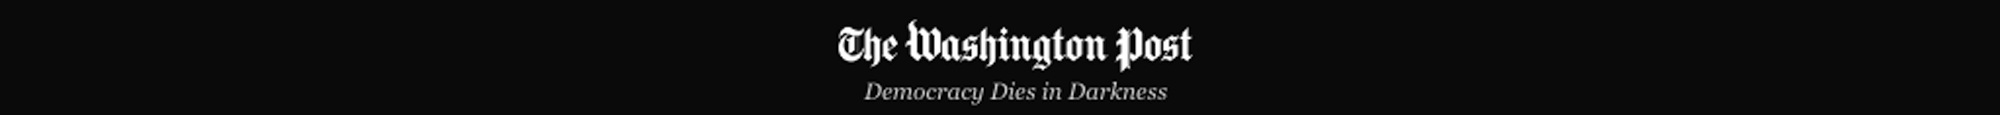 WashingtonPost.jpg